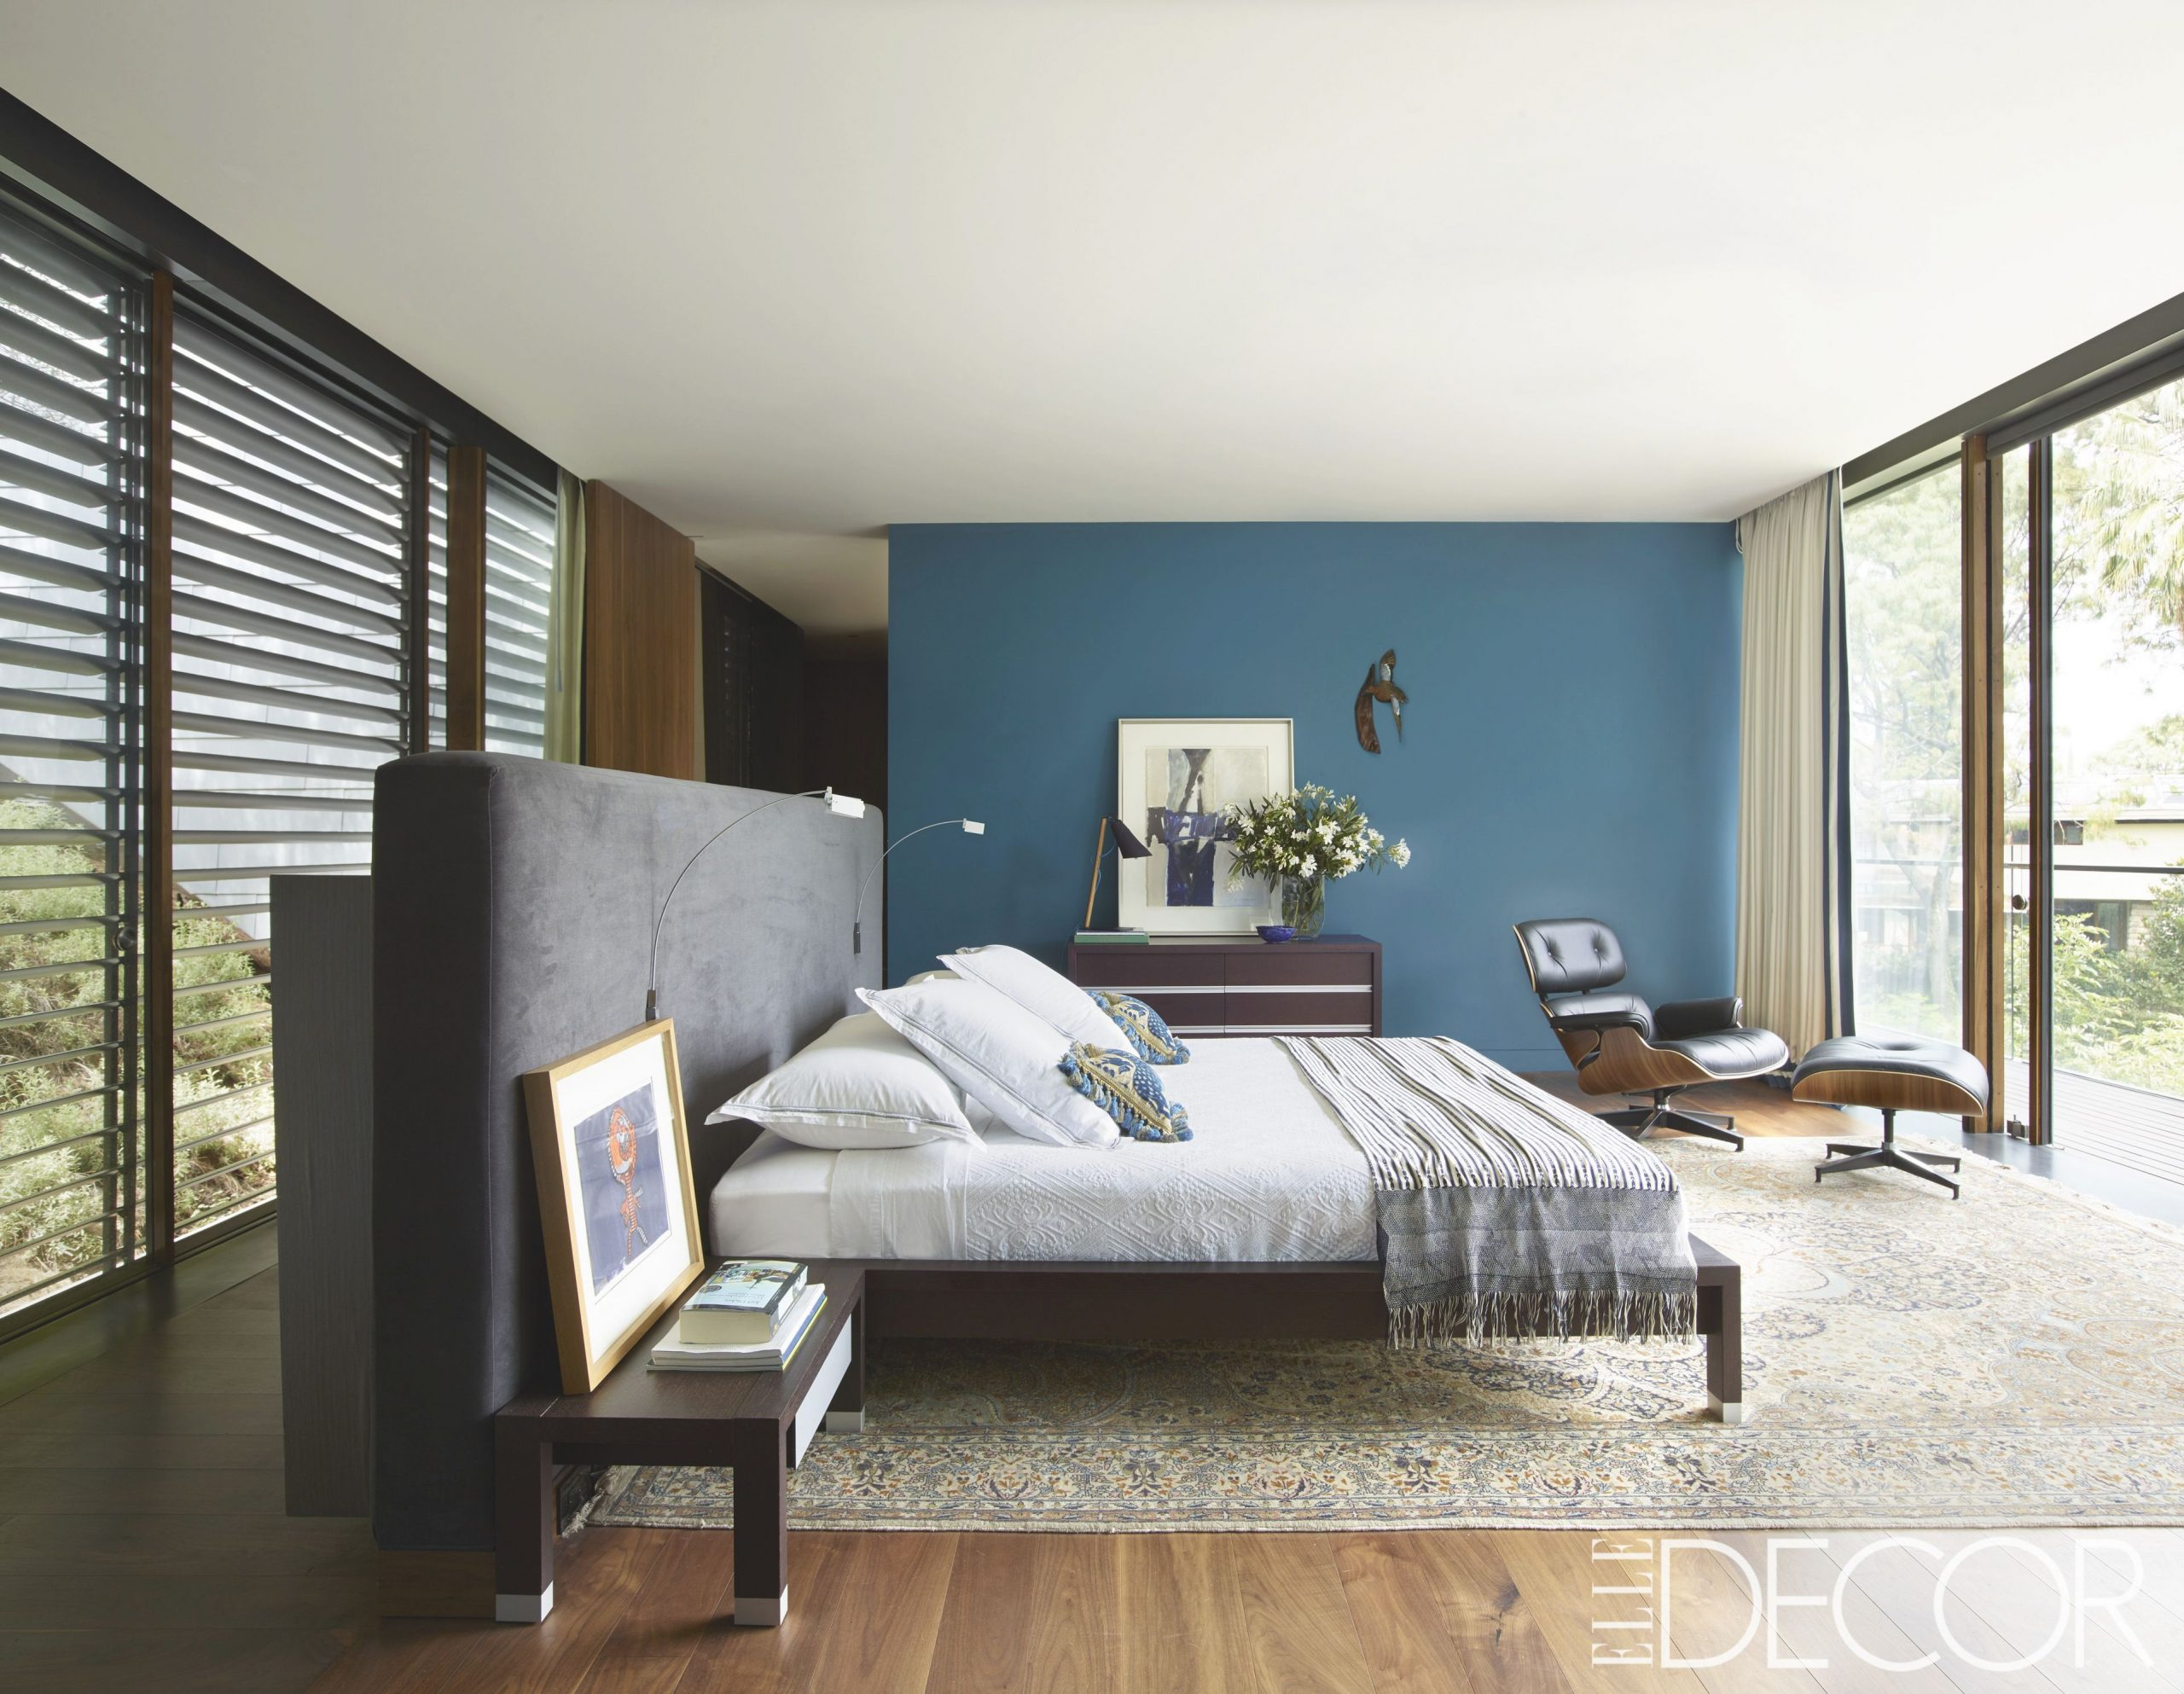 30+ Minimalist Bedroom Decor Ideas – Modern Designs For pertaining to Relaxing Master Bedroom Decorating Ideas